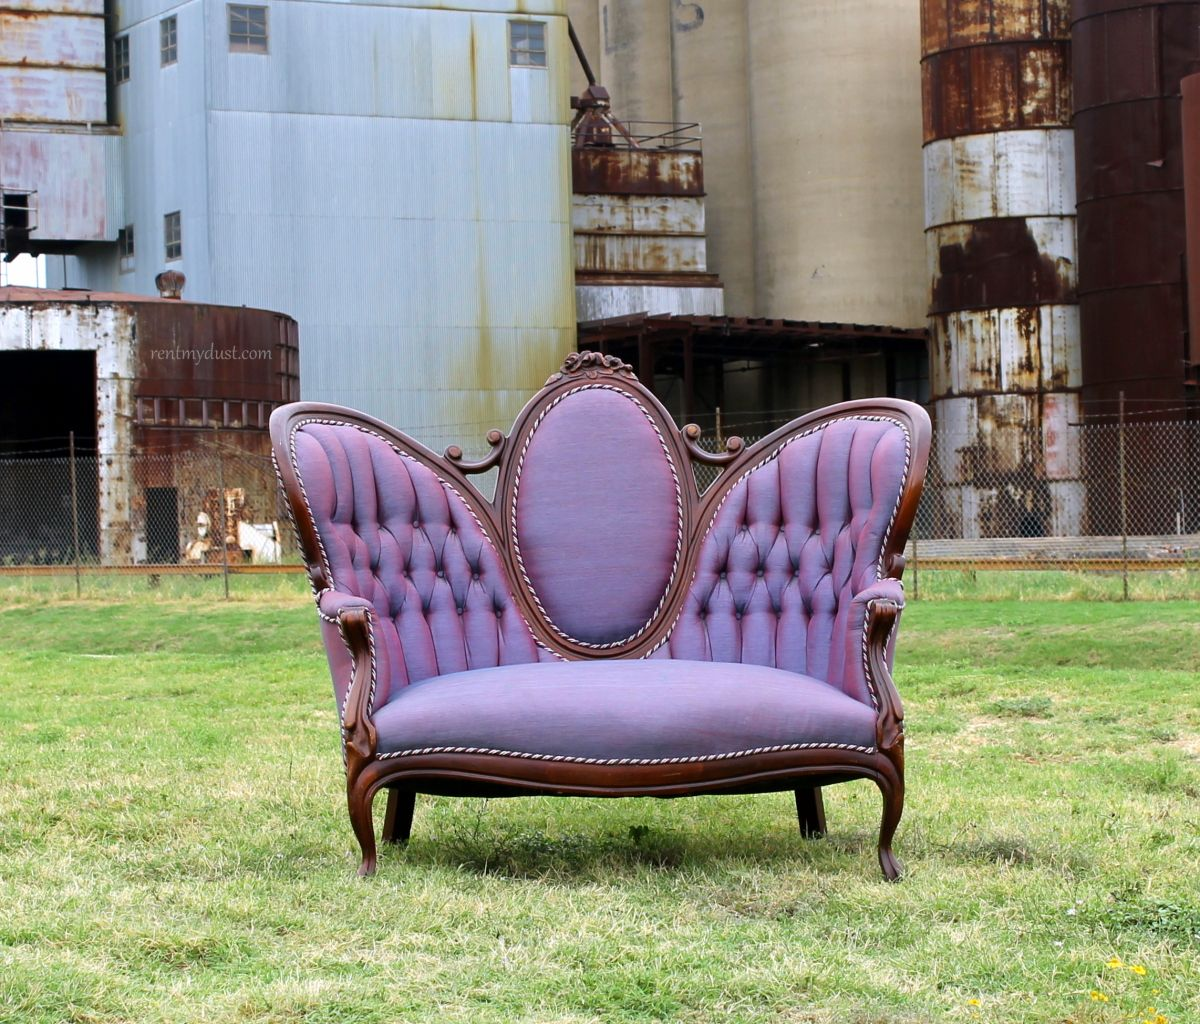 Our Ursula Purple tufted sofa is perfect for your vintage lounge area at  your dream wedding